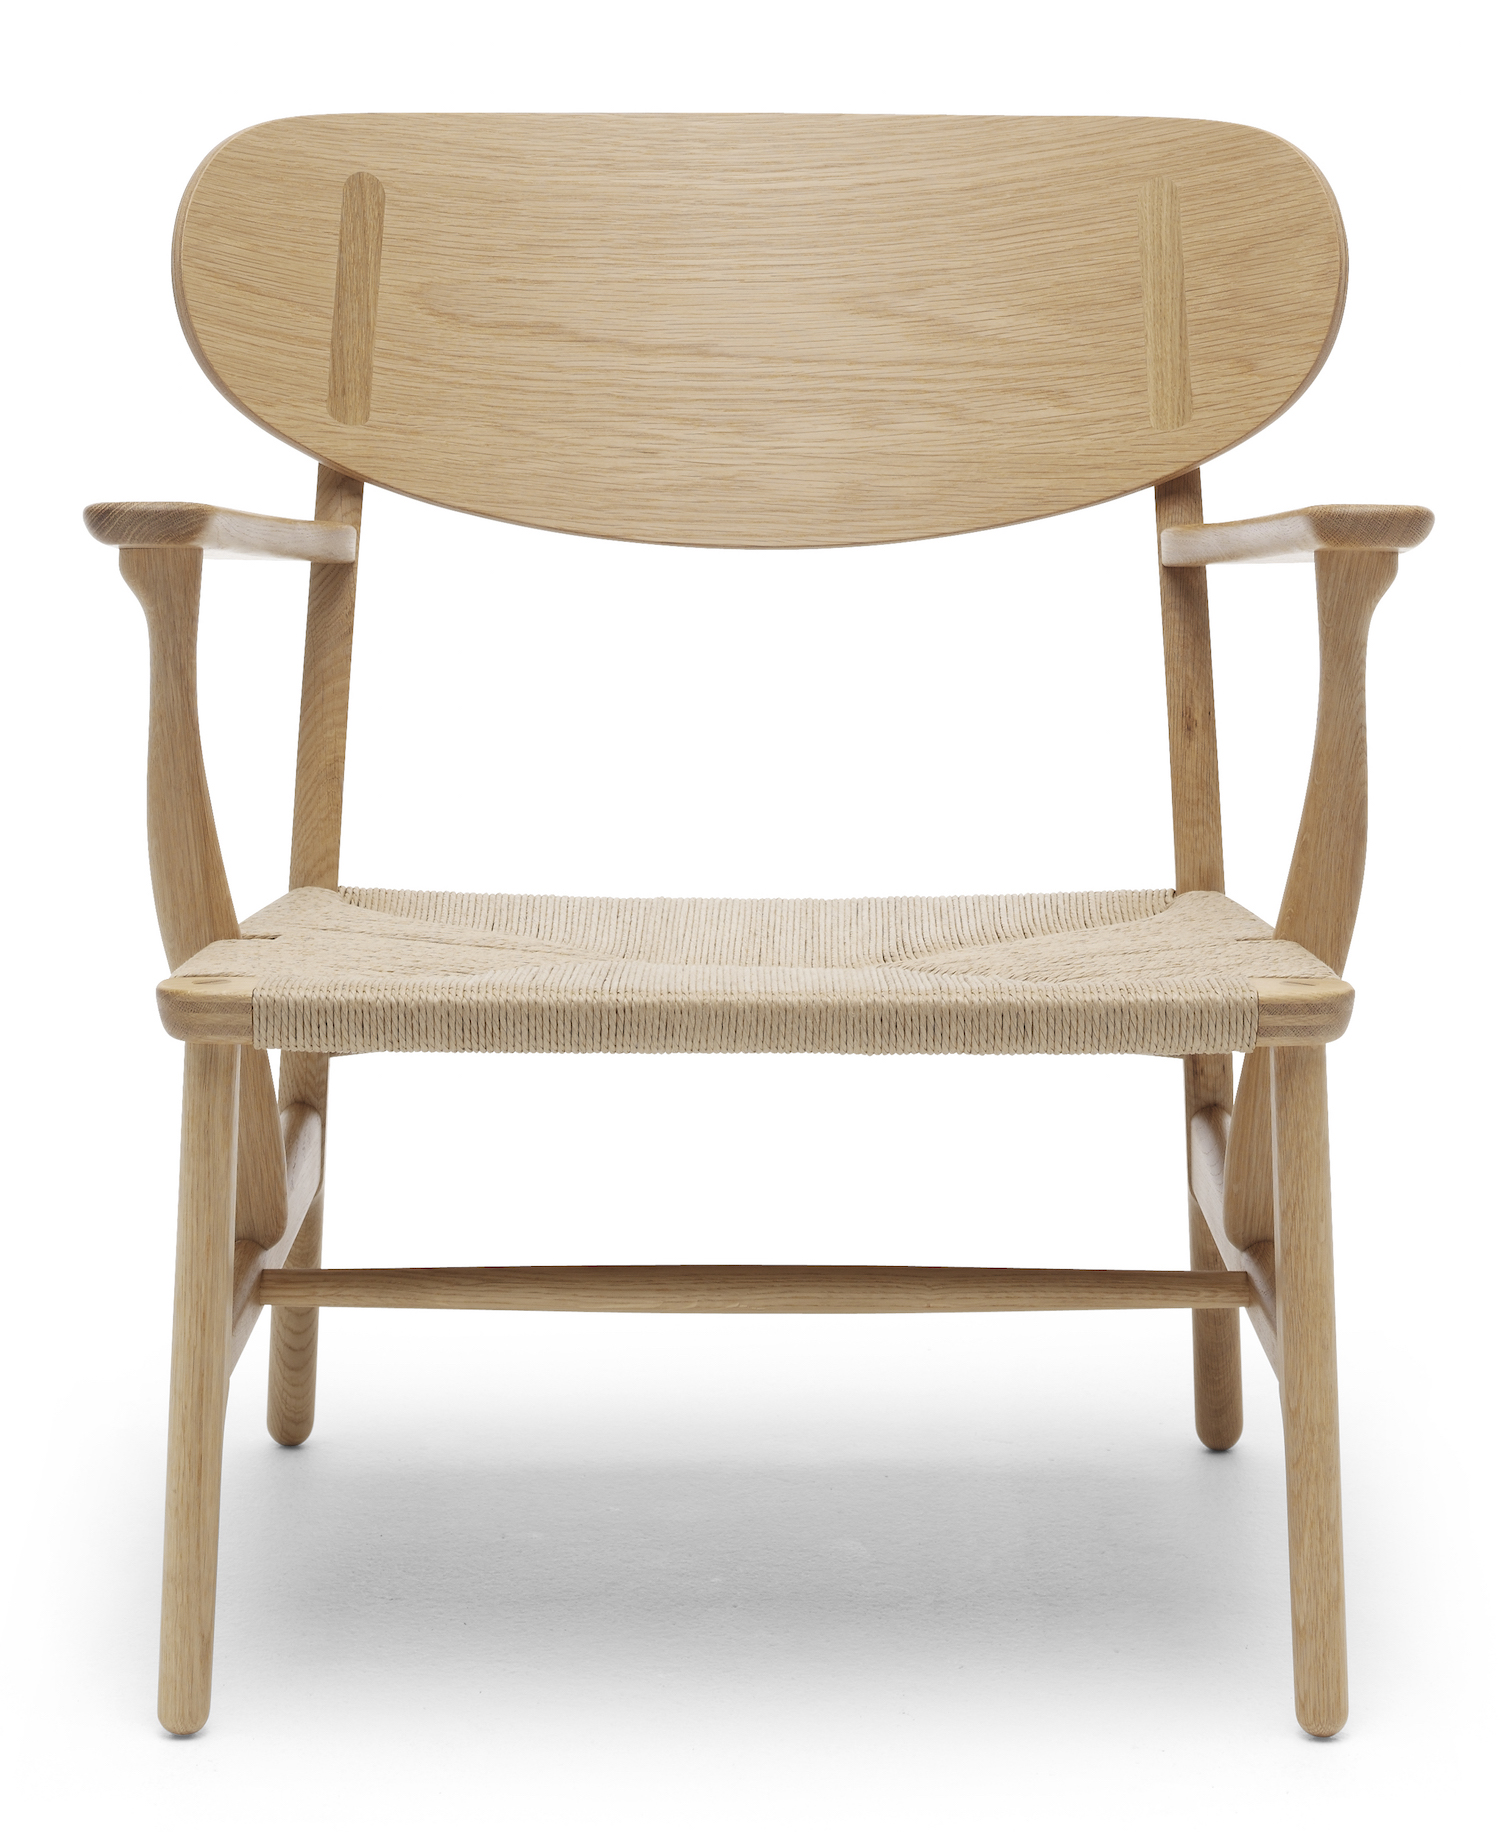 CH22 Lounge Chair Hans J Wegner Carl Hansen & Son